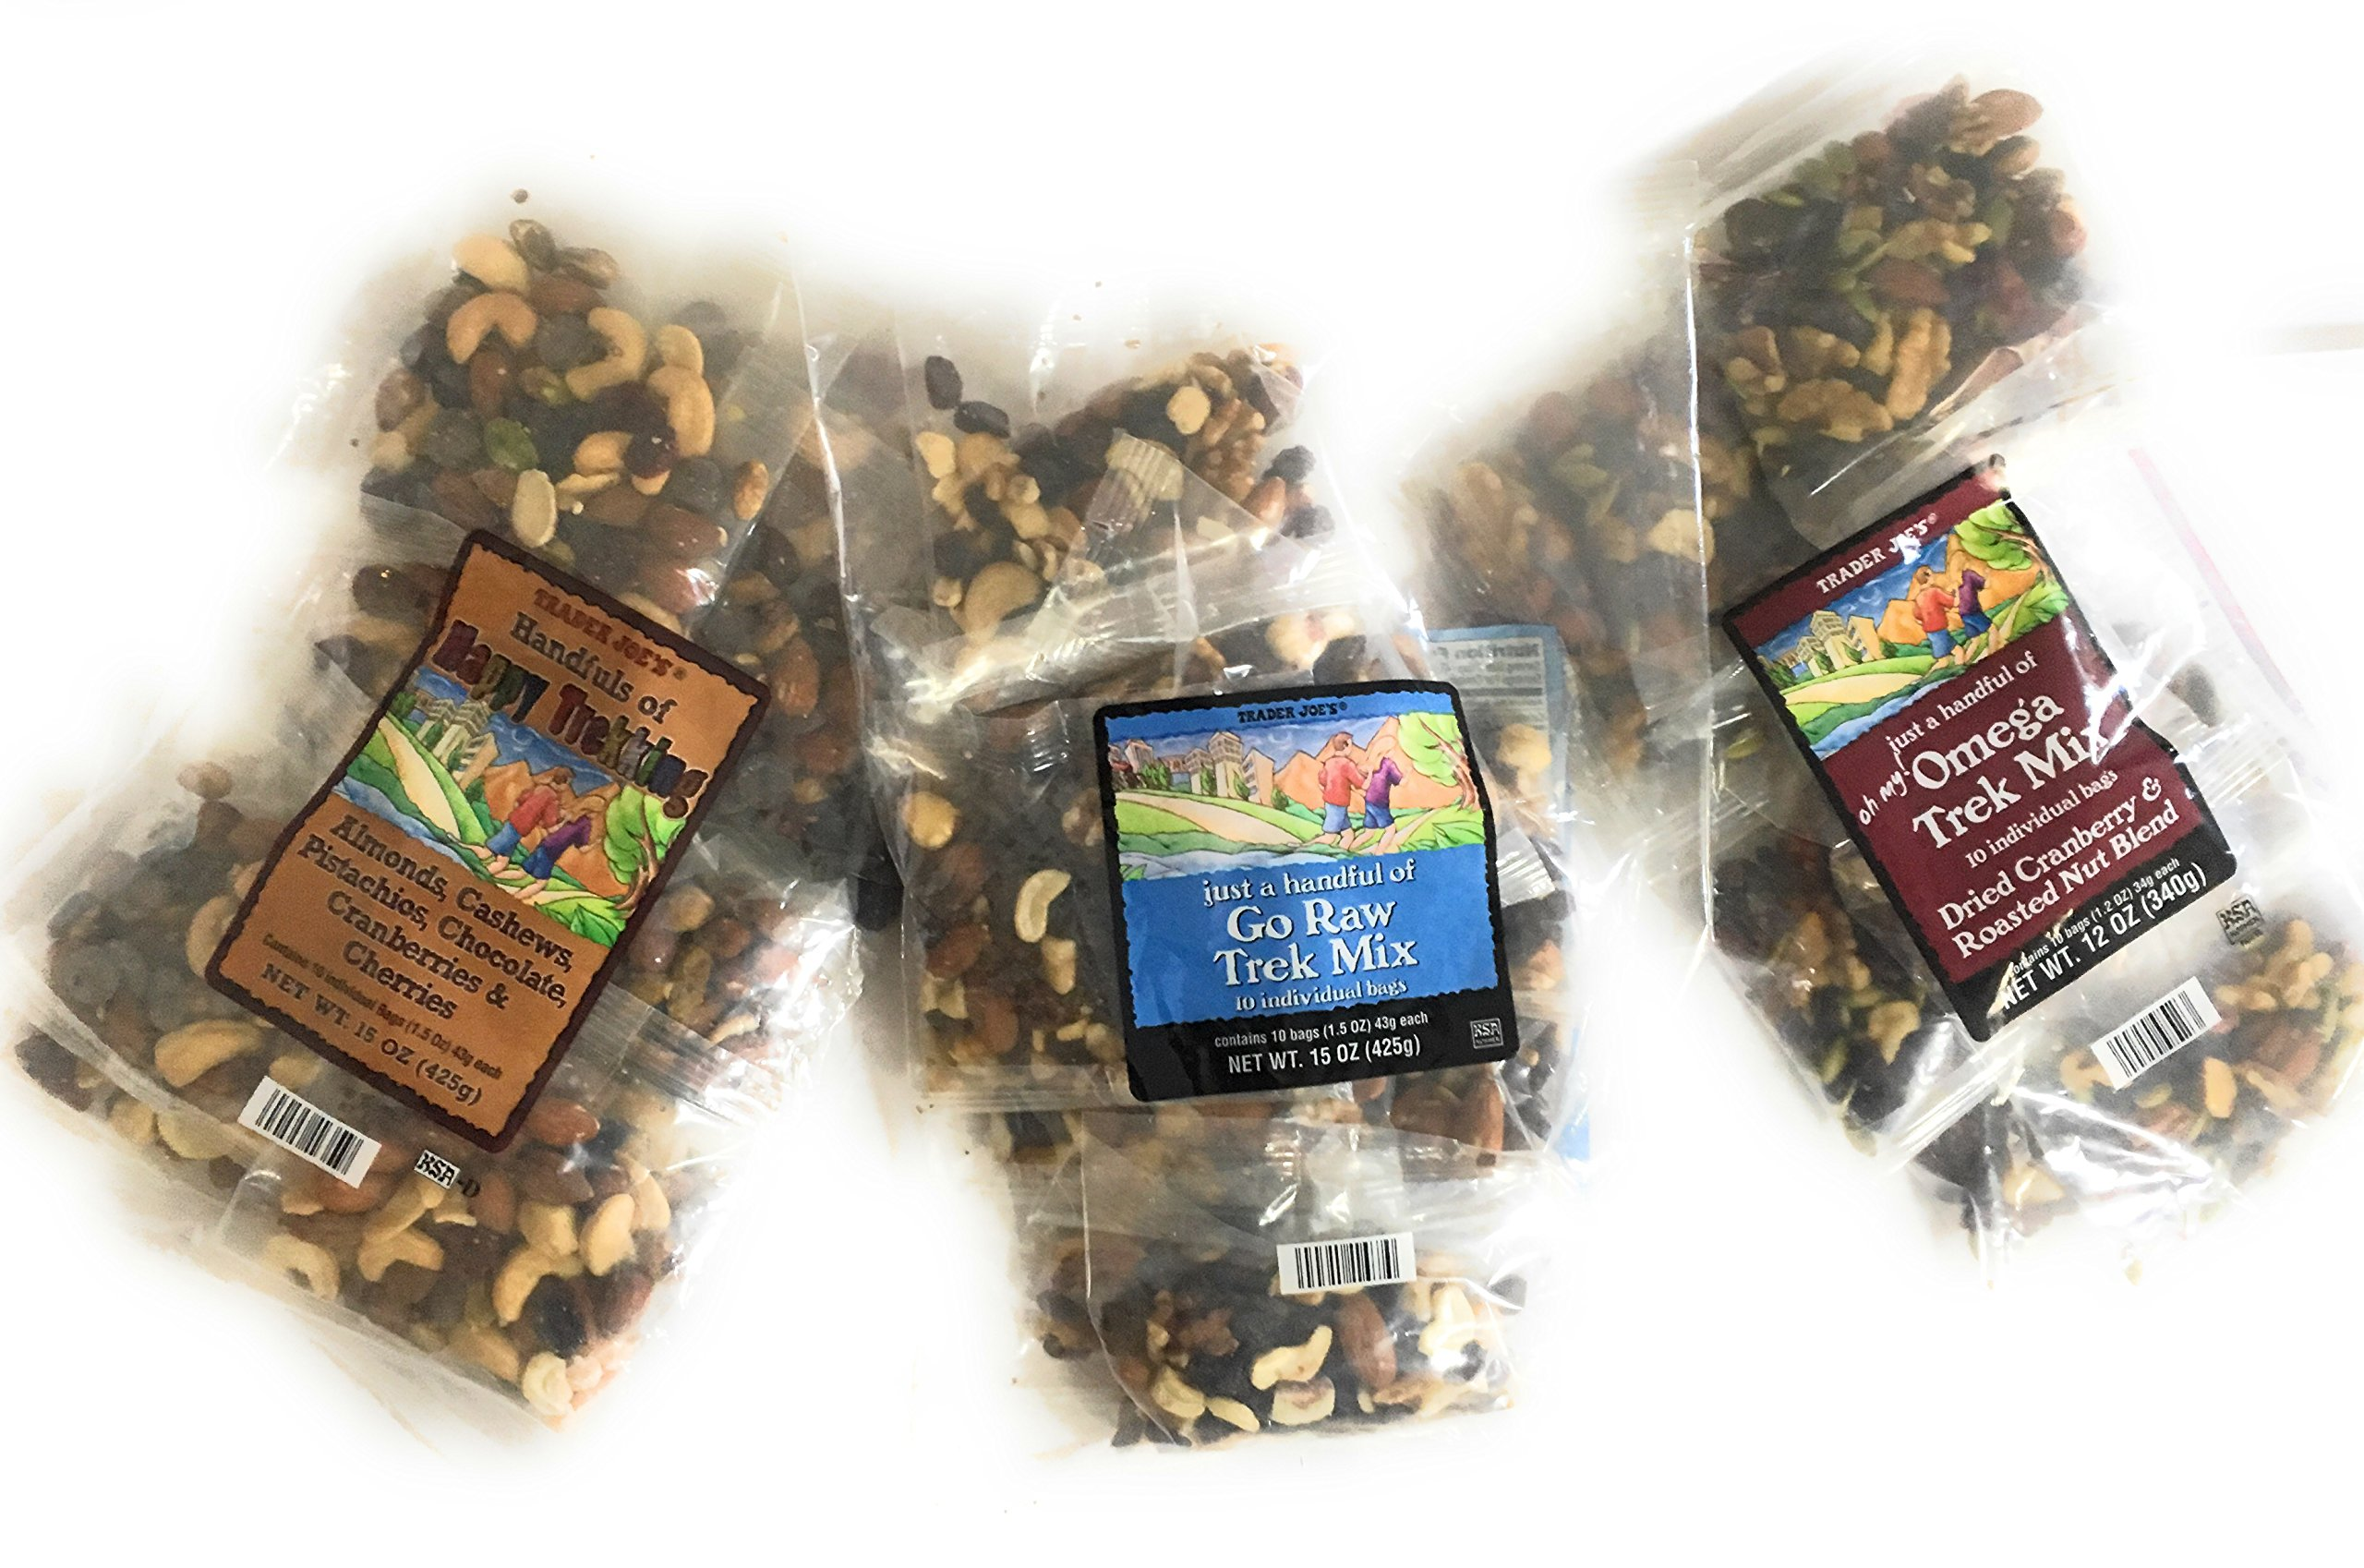 Trader Joes Trail Mix Snack Bundle - 1 Omega Trek, 1 Happy Trekking, and 1 Go Raw Pack - Each with Individual Mini Packets of Mixed Nuts - A Healthy Assortment for Adults and Kids by TJ's (Image #1)